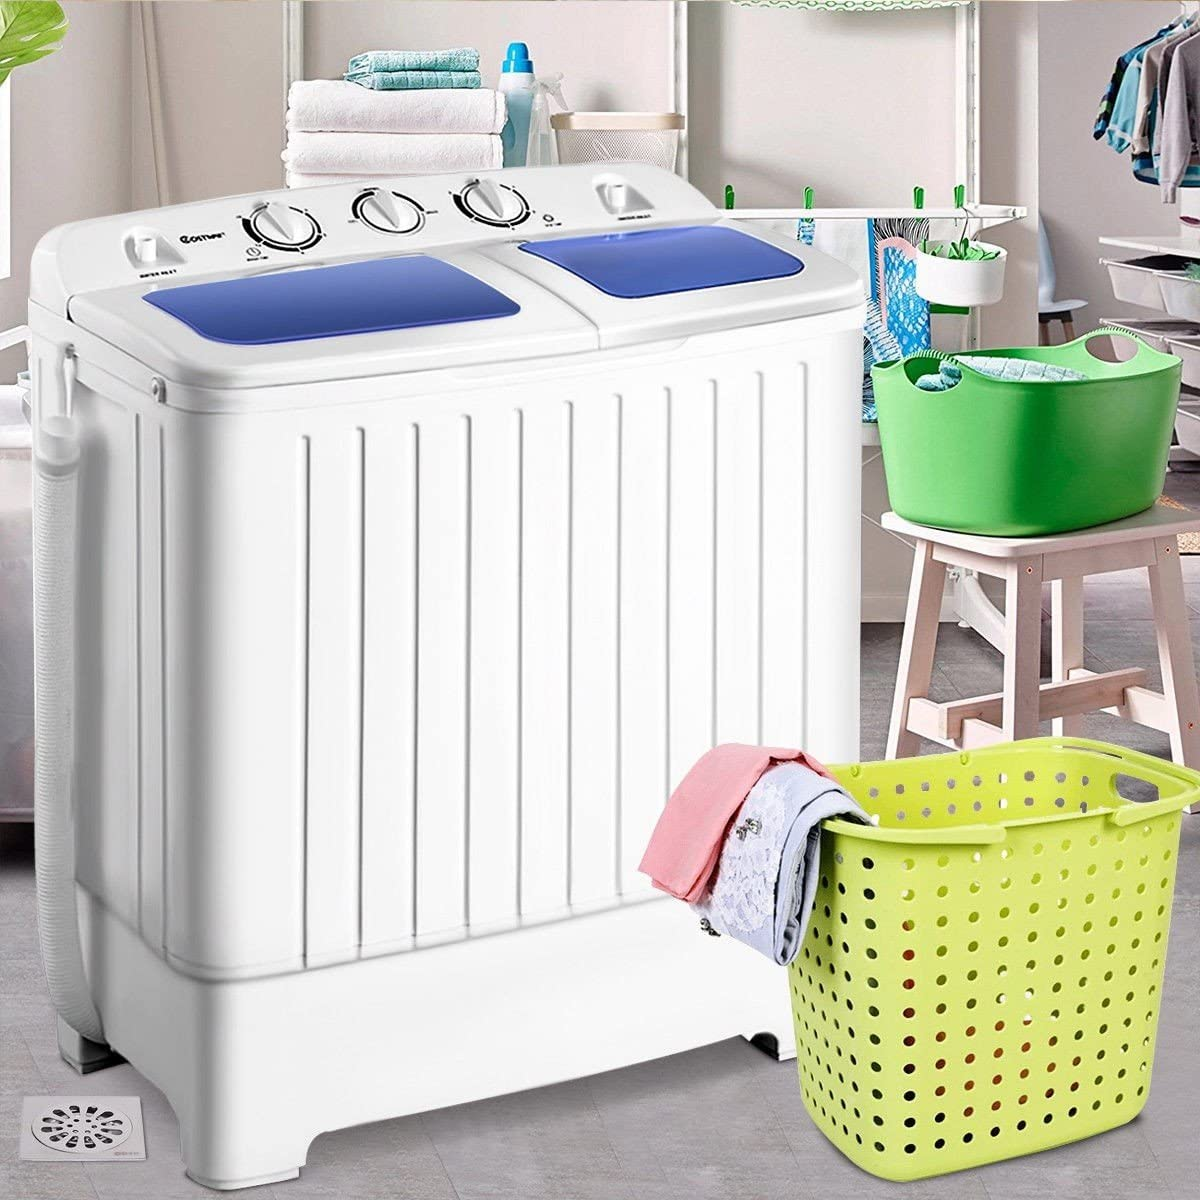 11 lbs Compact Twin Tub Washing Machine Washer Spinner Good Solution for Doing Laundry in Small Apartments, Dorms, Condos, etc